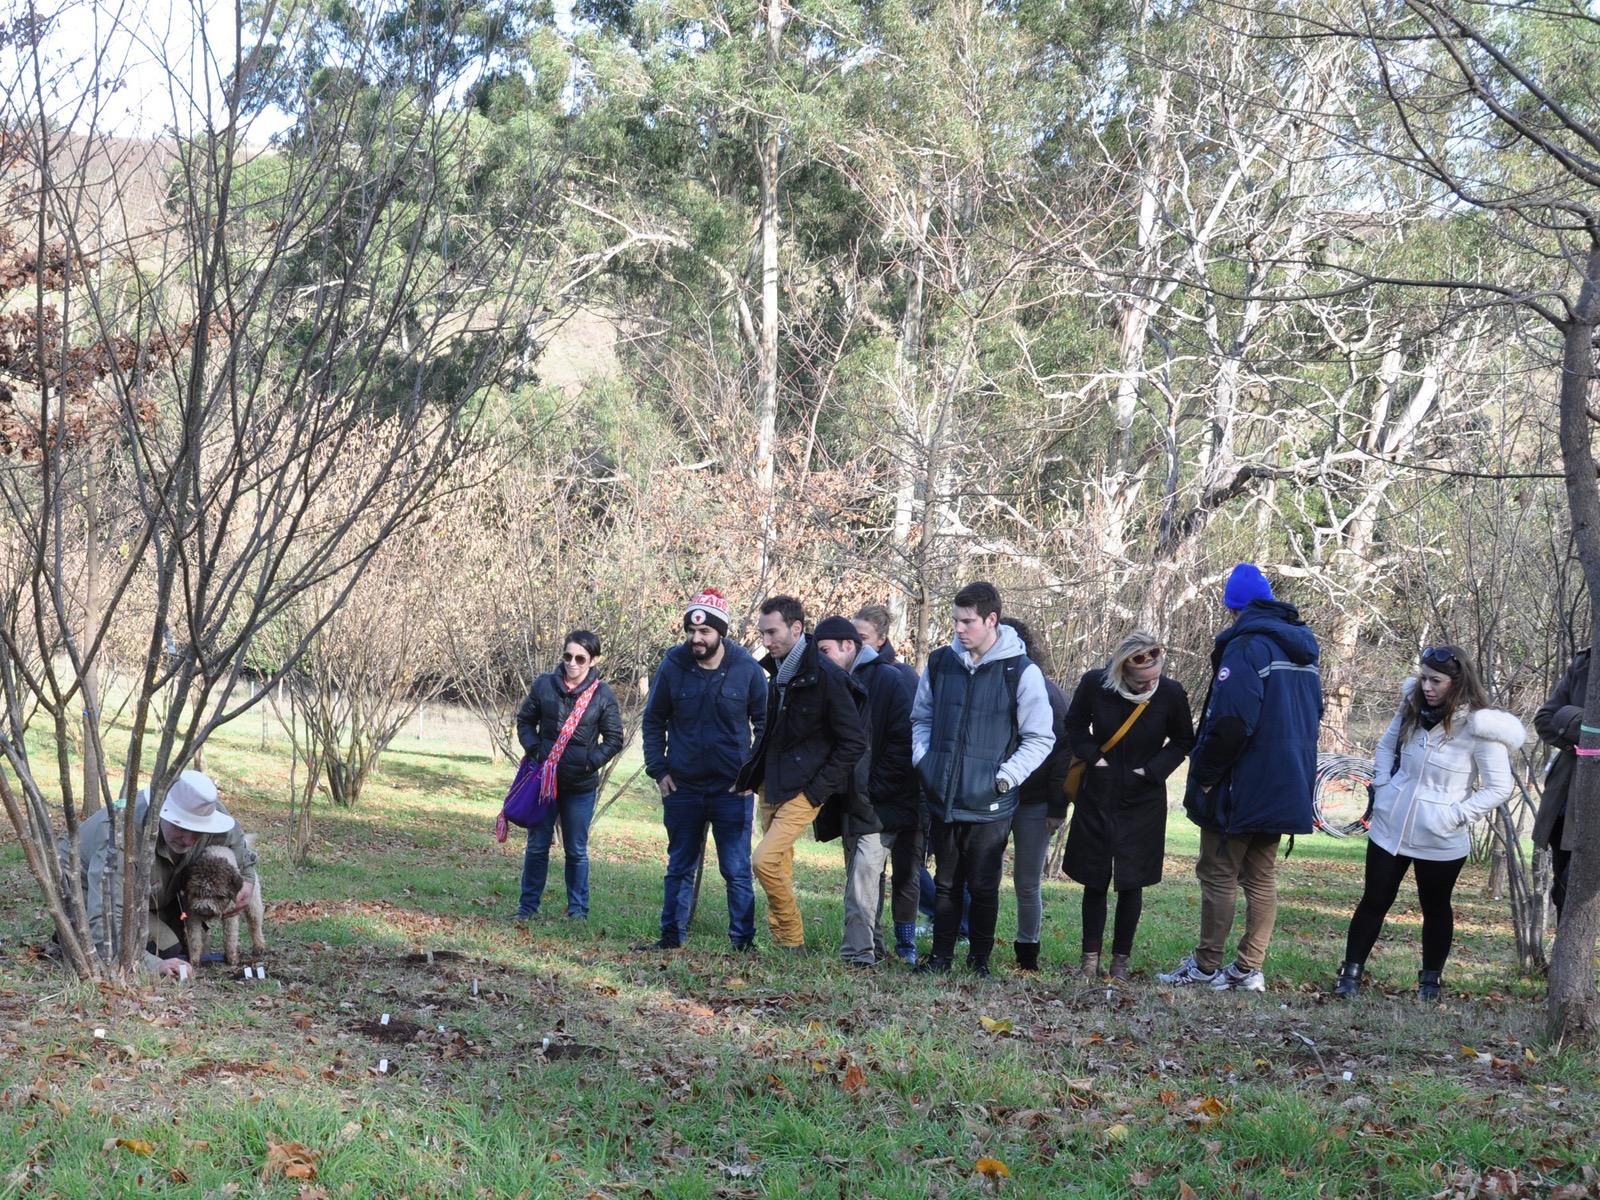 Hunt event group locating a truffle with Lani the truffle dog at Yarra Valley Truffles